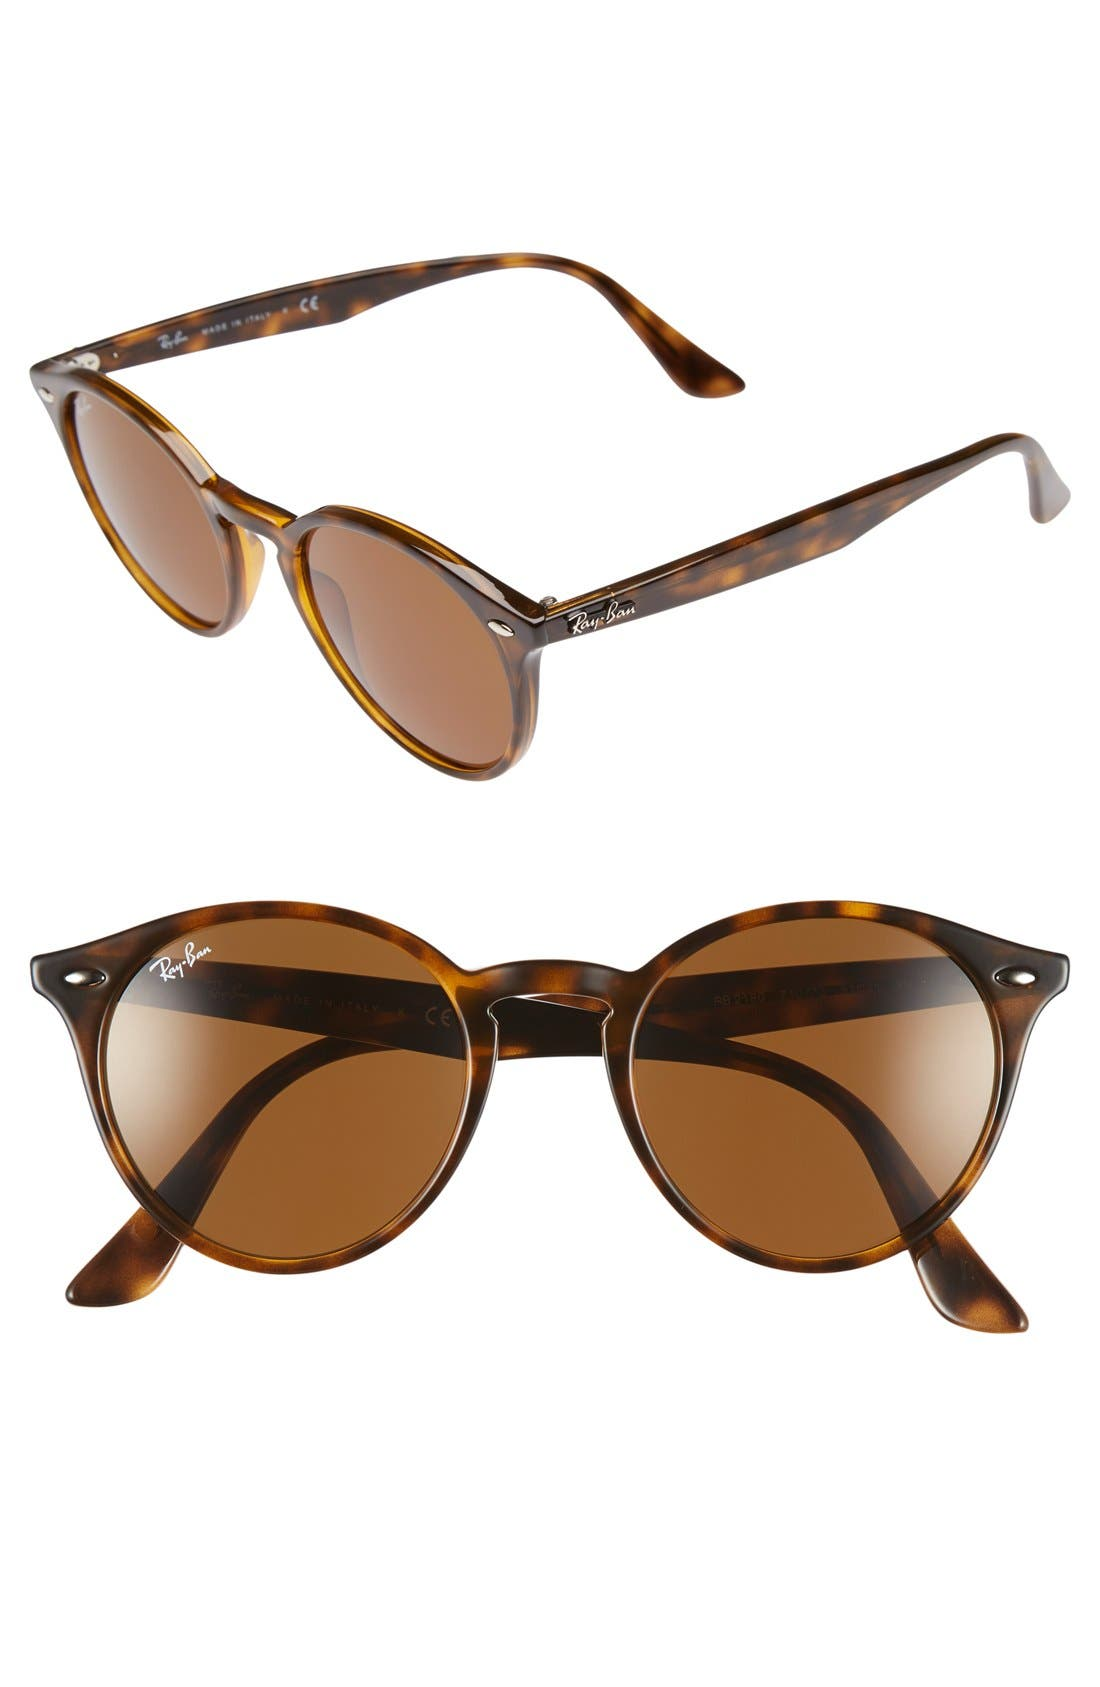 Highstreet 51mm Round Sunglasses,                             Main thumbnail 3, color,